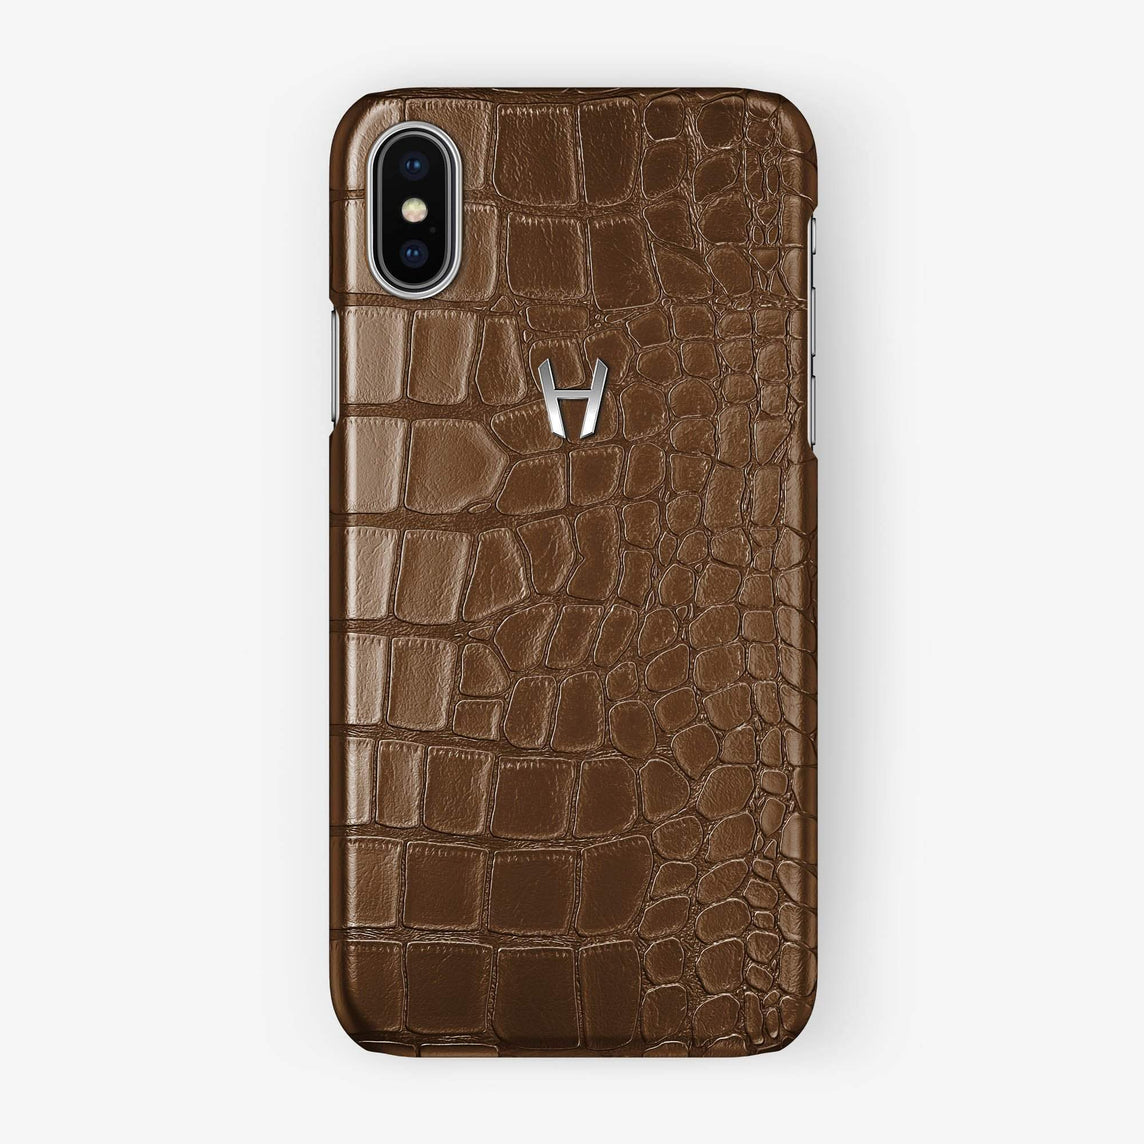 Alligator [iPhone Case] [model:iphone-xsmax-case] [colour:brown] [finishing:stainless-steel] - Hadoro